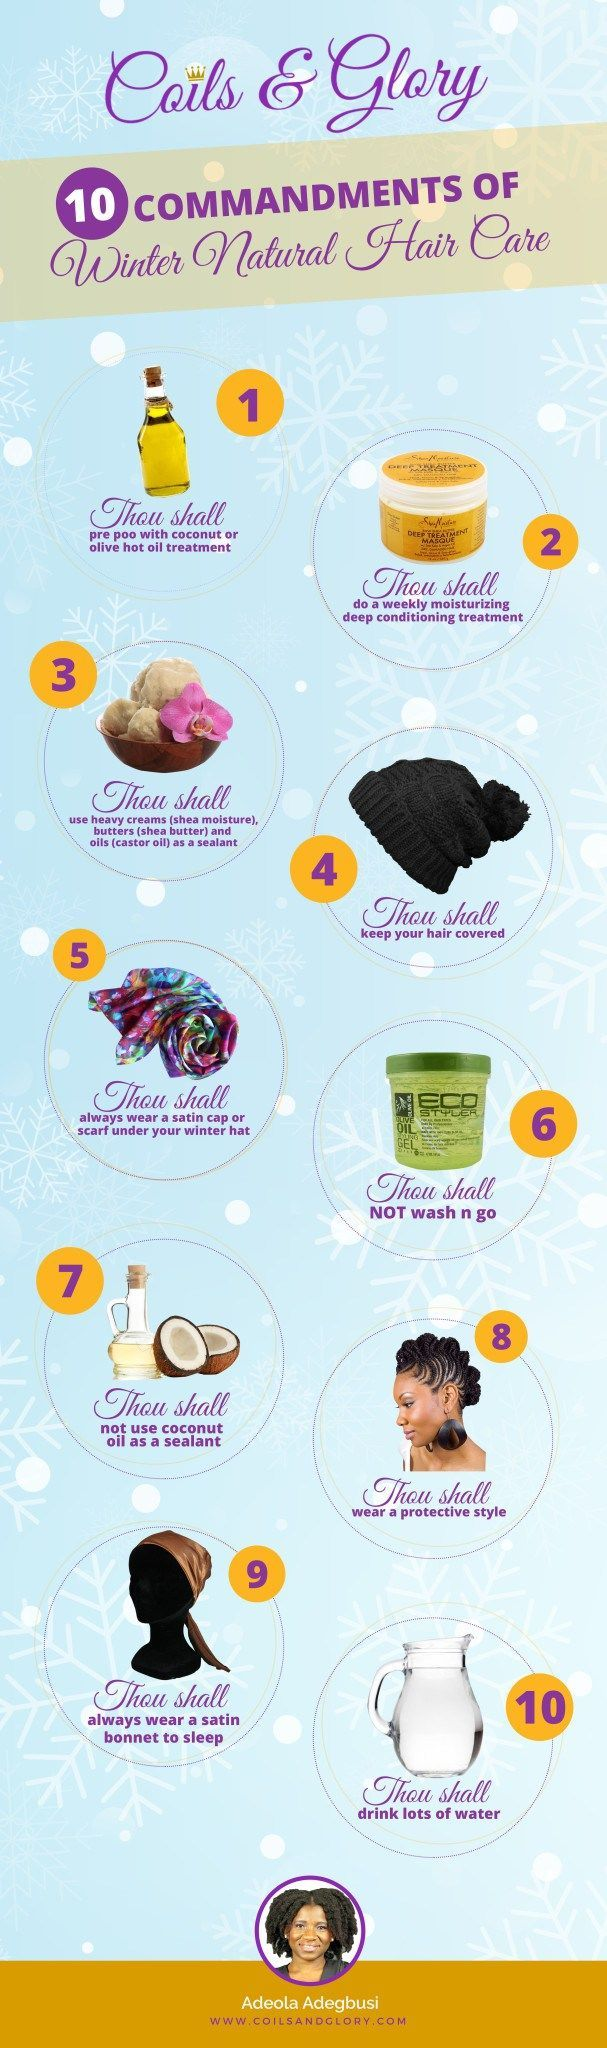 commandments of winter natural hair care natural winter and